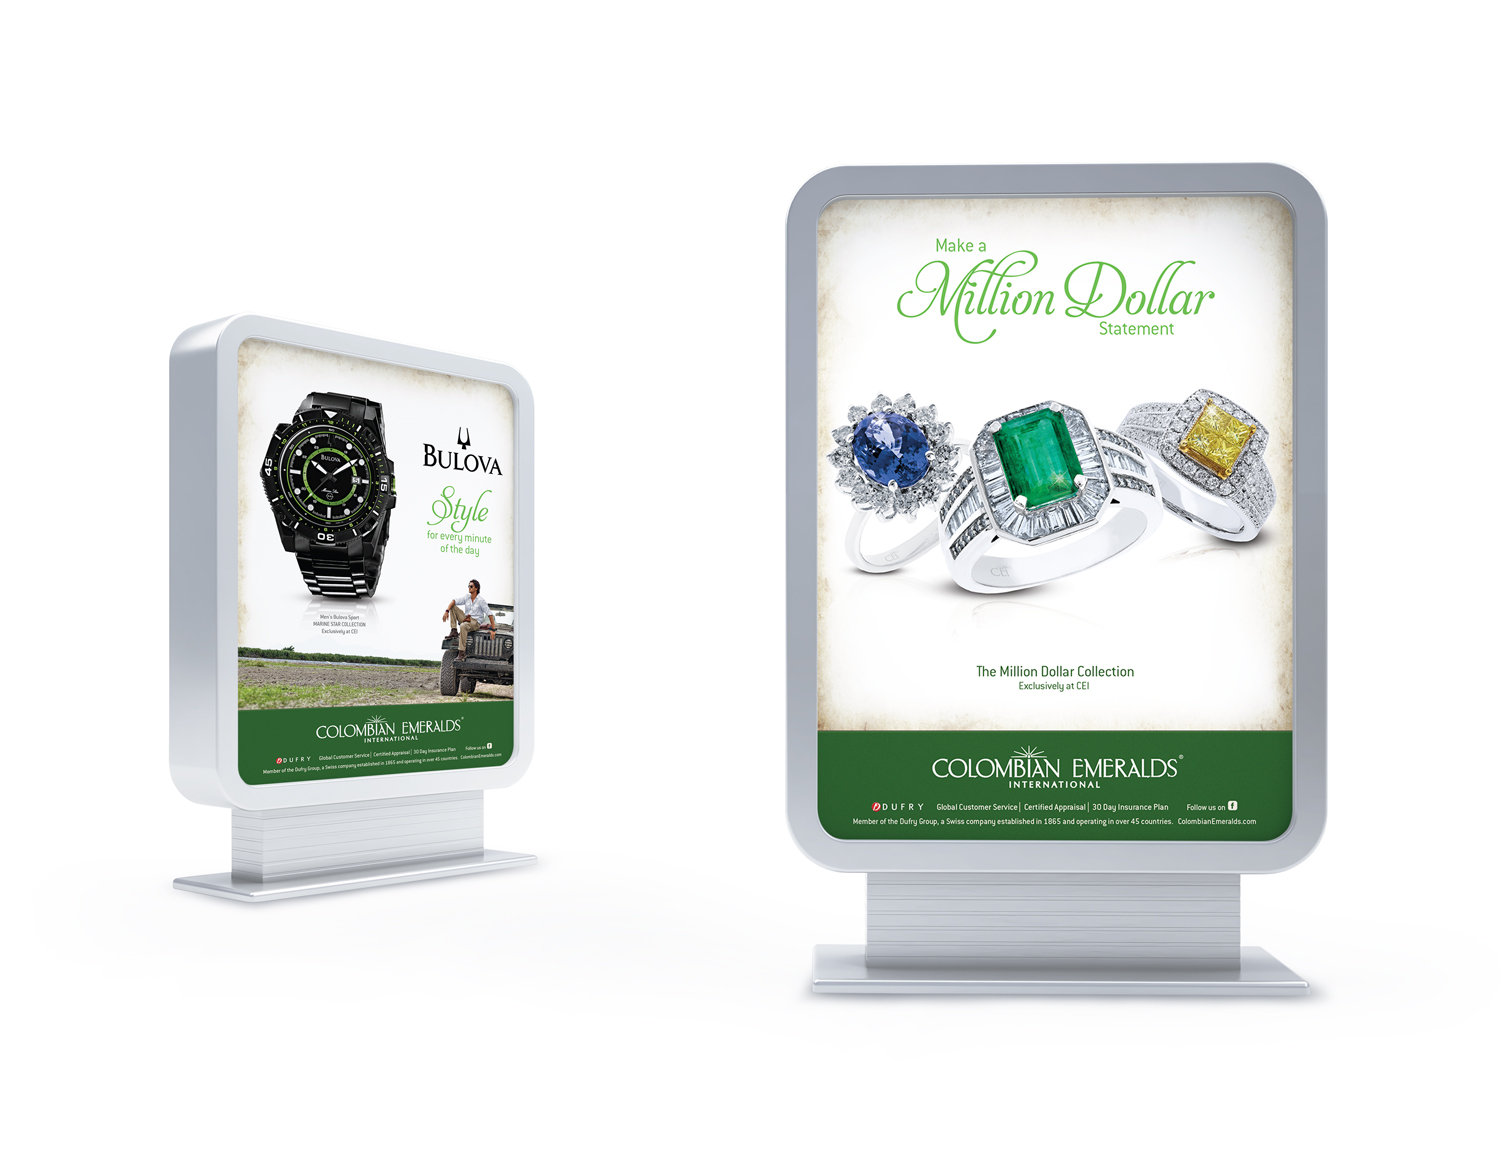 Colombian Emeralds International Duratrans   OOH Advertising